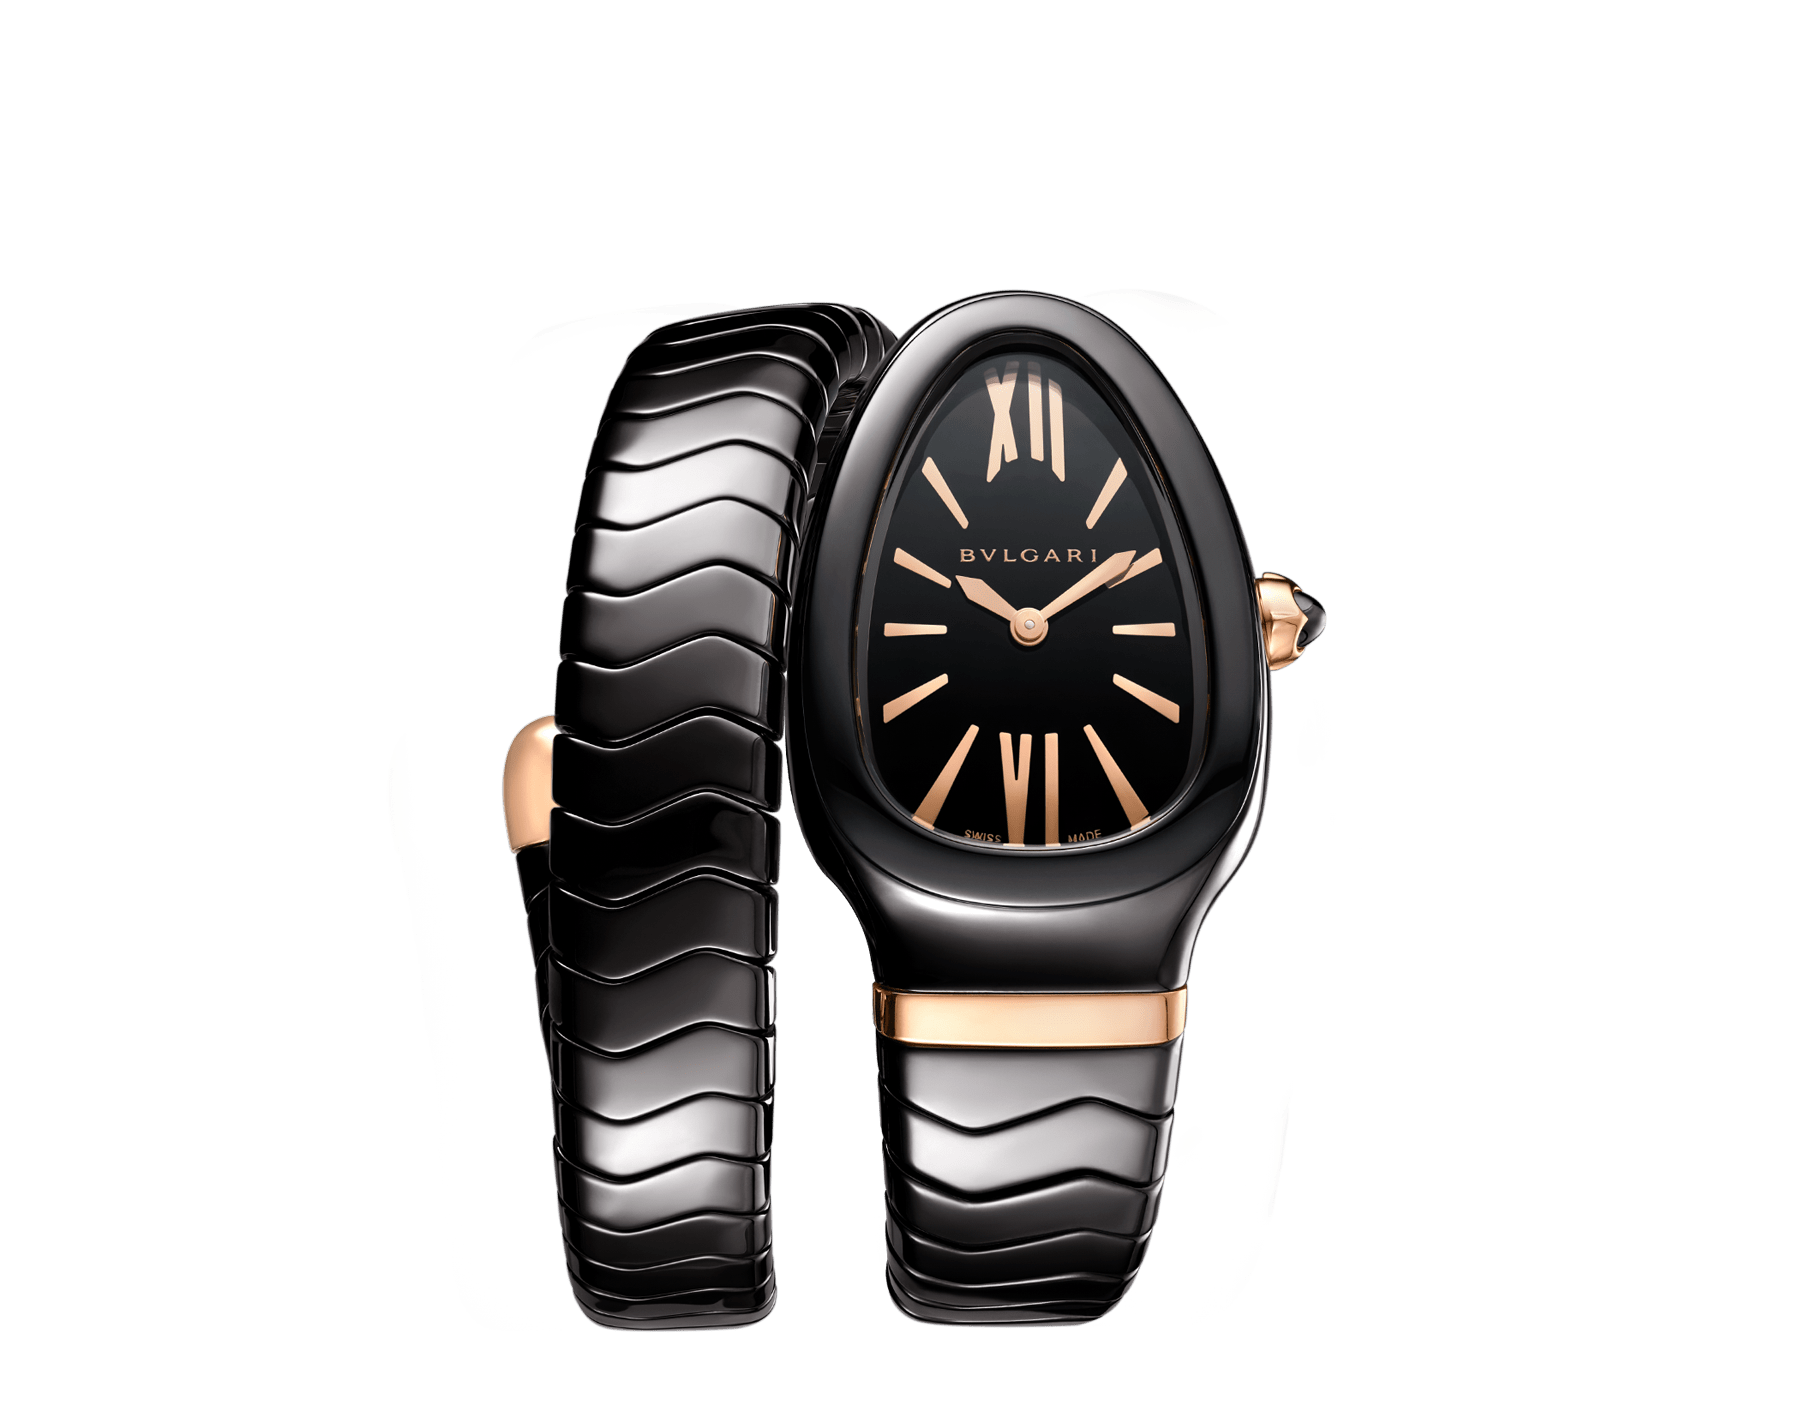 Serpenti Spiga single spiral watch with black ceramic case, black lacquered dial and black ceramic bracelet set with 18 kt rose gold elements. 102734 image 1